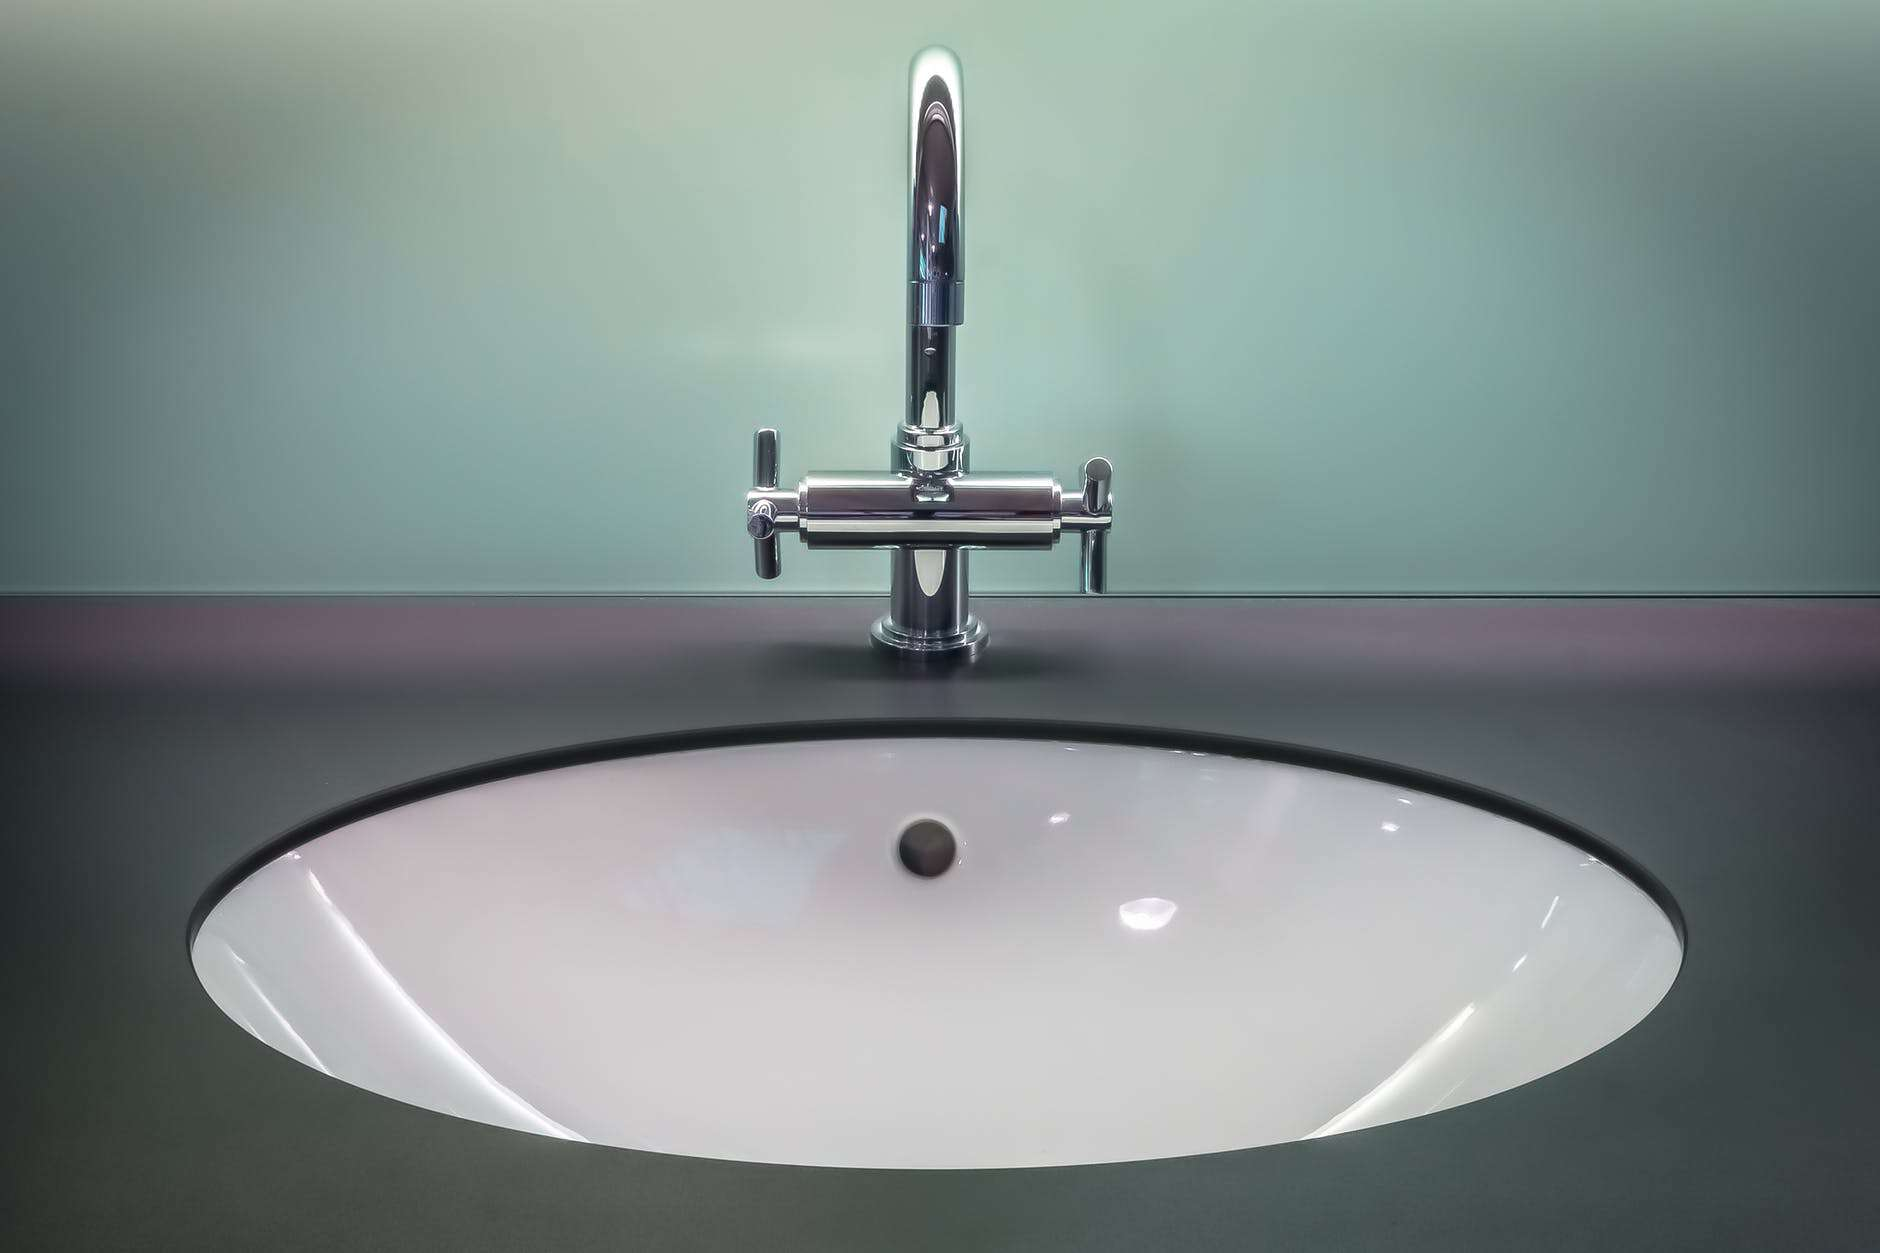 Close up of a sink.